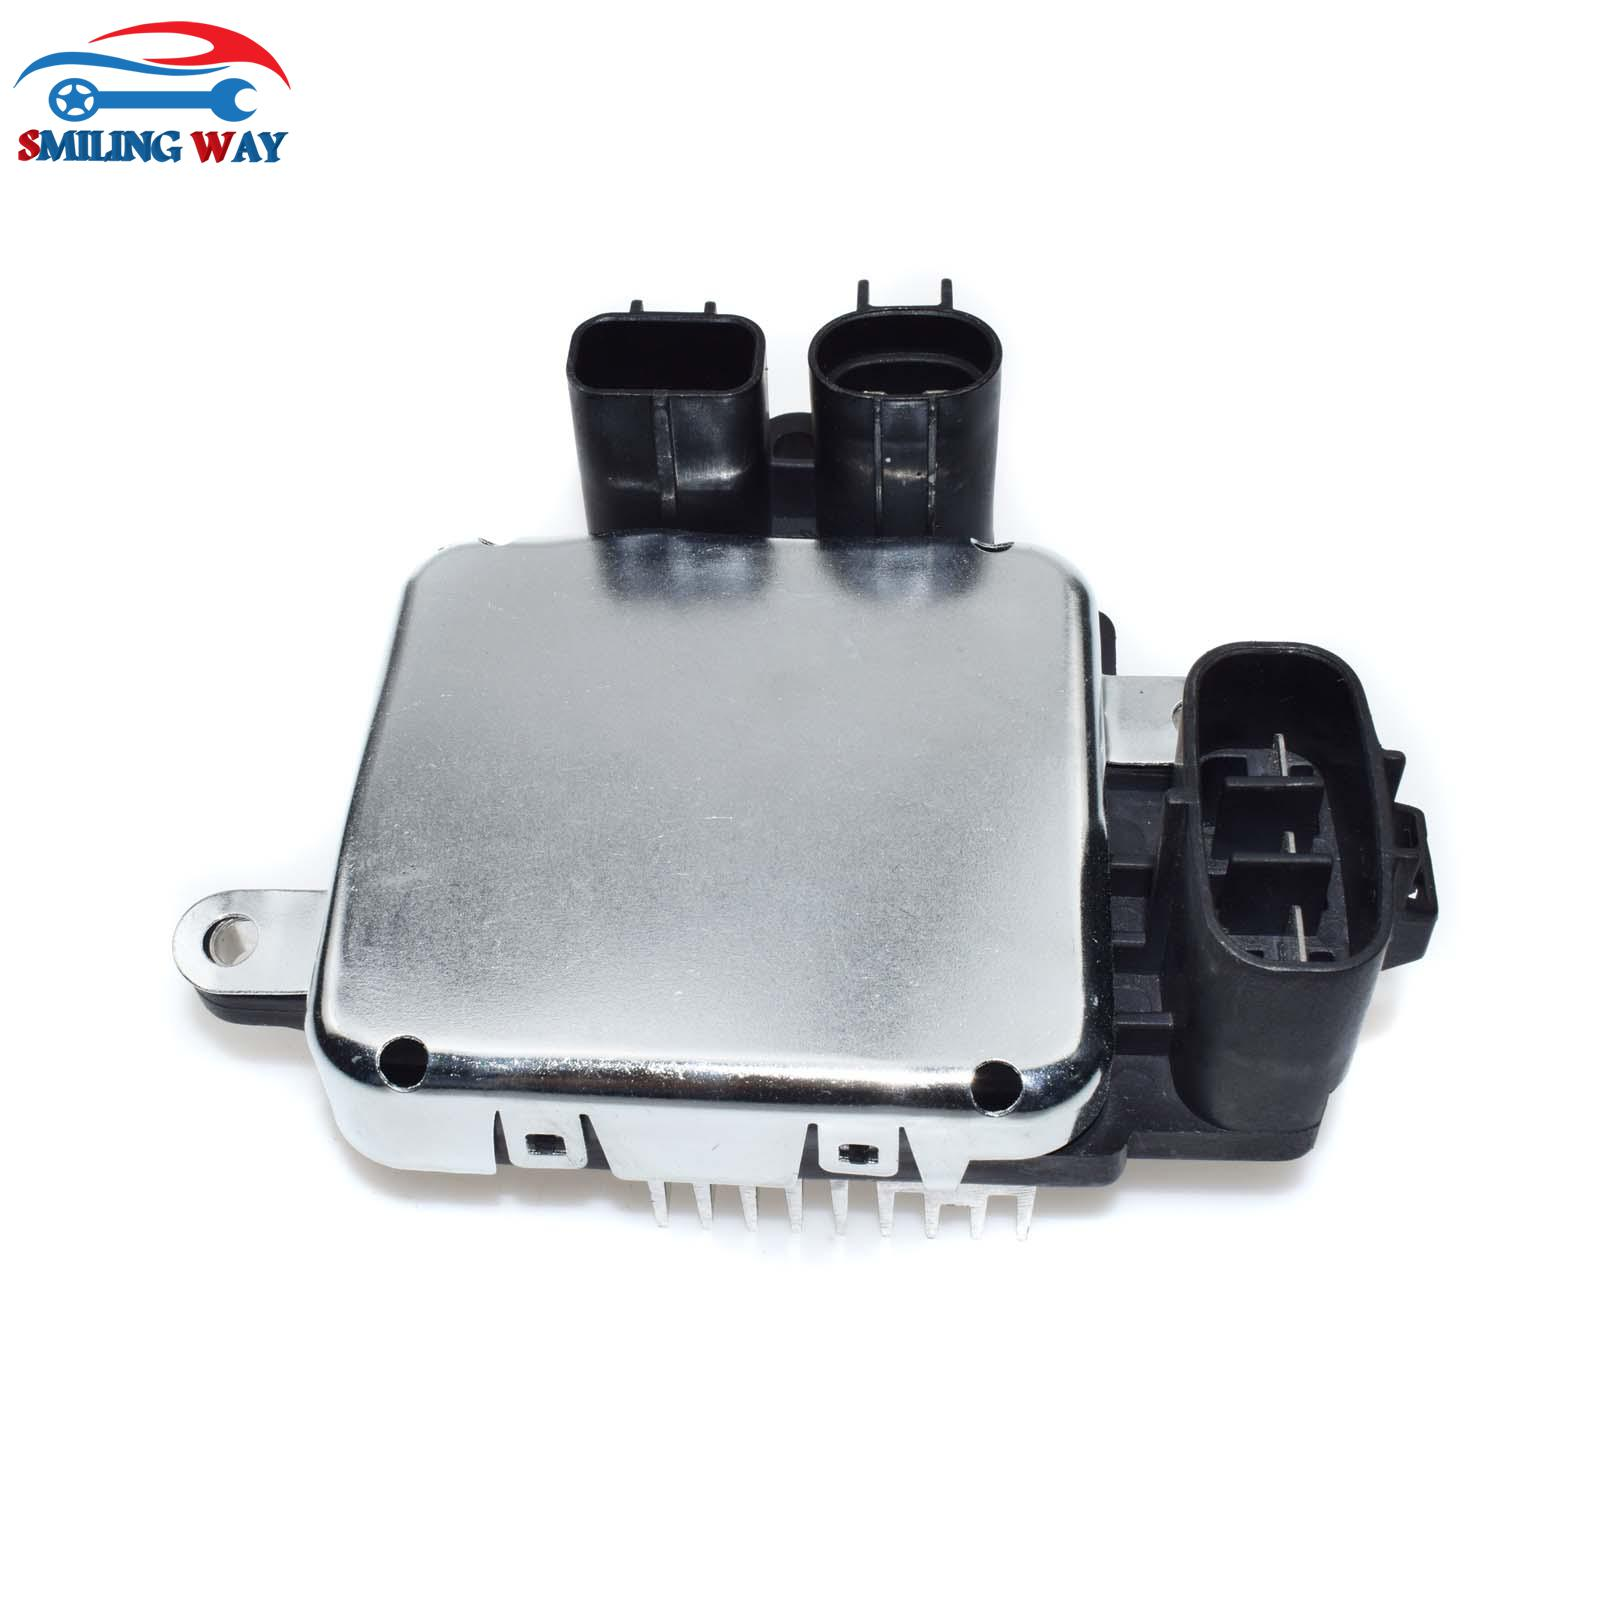 medium resolution of smiling way blower motor resistor for toyota camry highlander venza avalon rav4 sienna lexus es350 gs300 gs350 gs430 gs450h in blower motors from